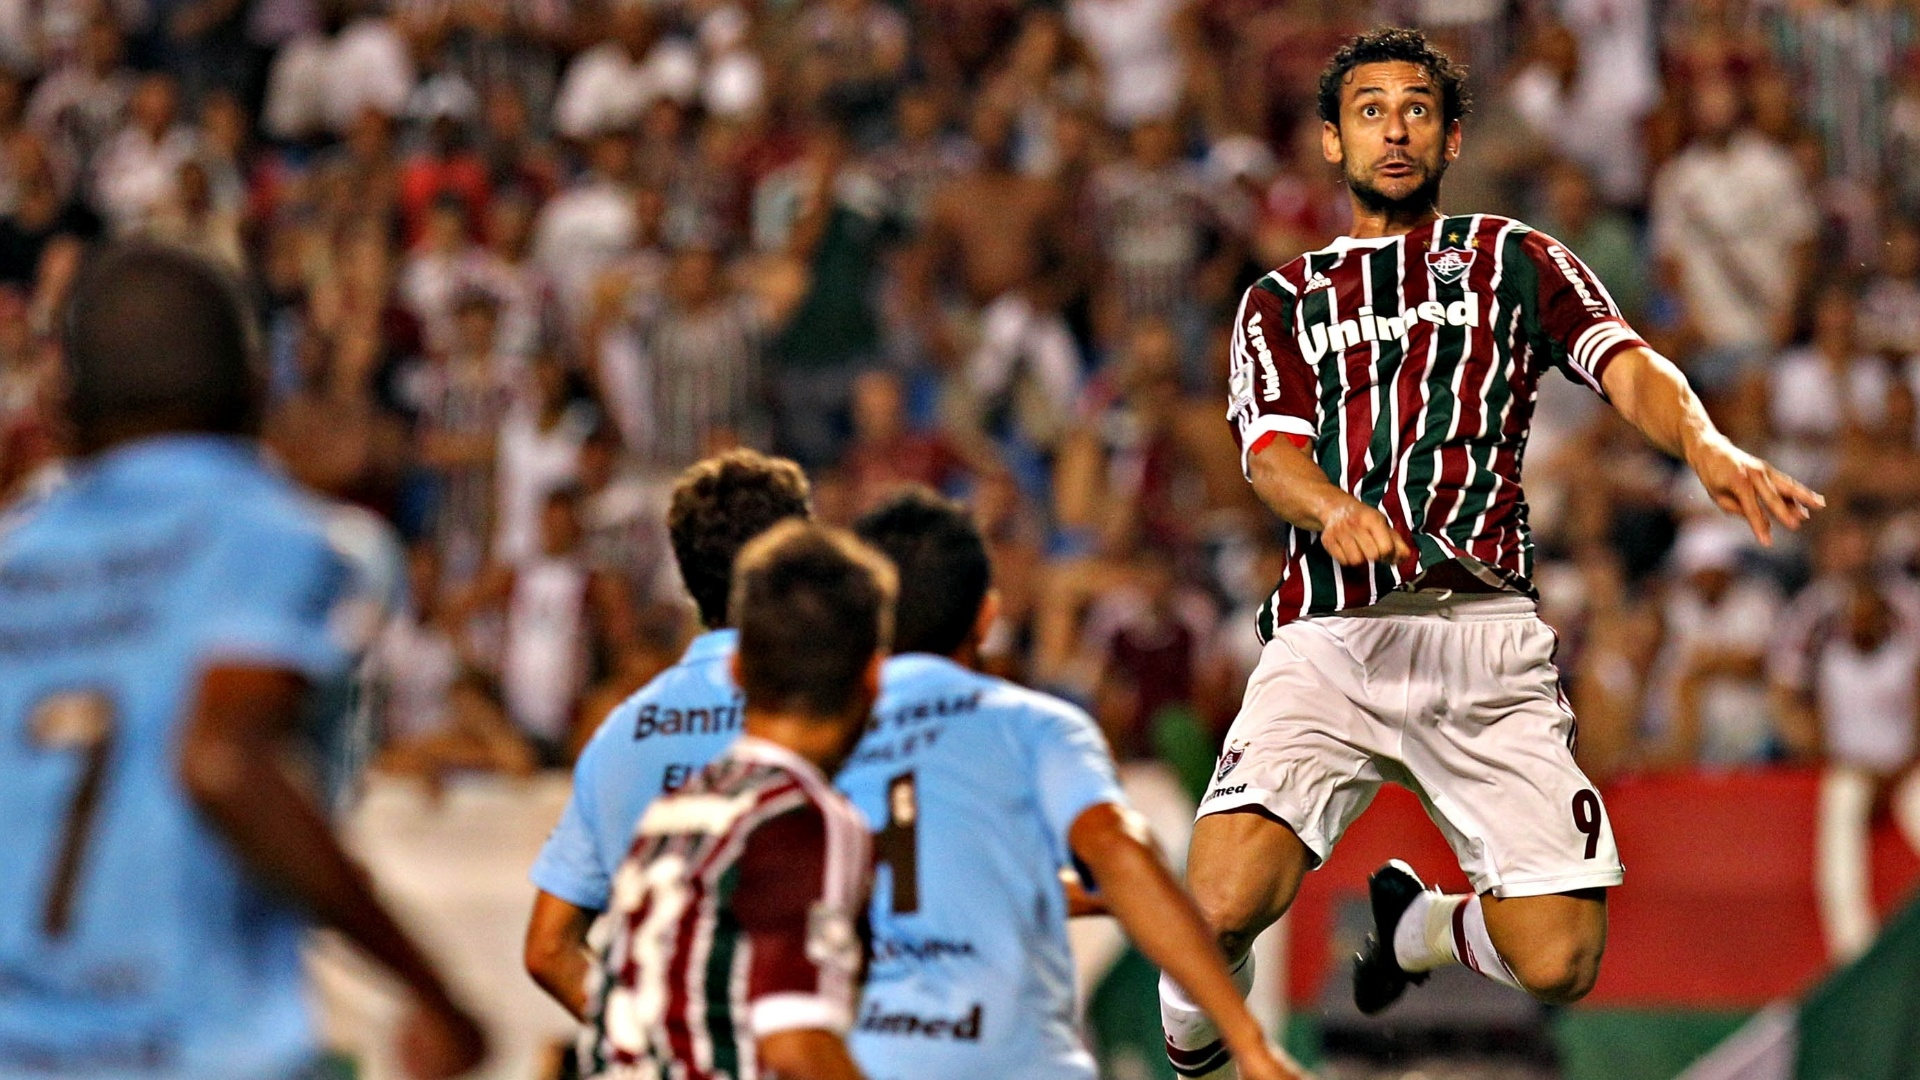 20.fev.2013 - Fred, atacante do Fluminense, sobe sozinho para cabecear a bola no duelo contra o Grmio